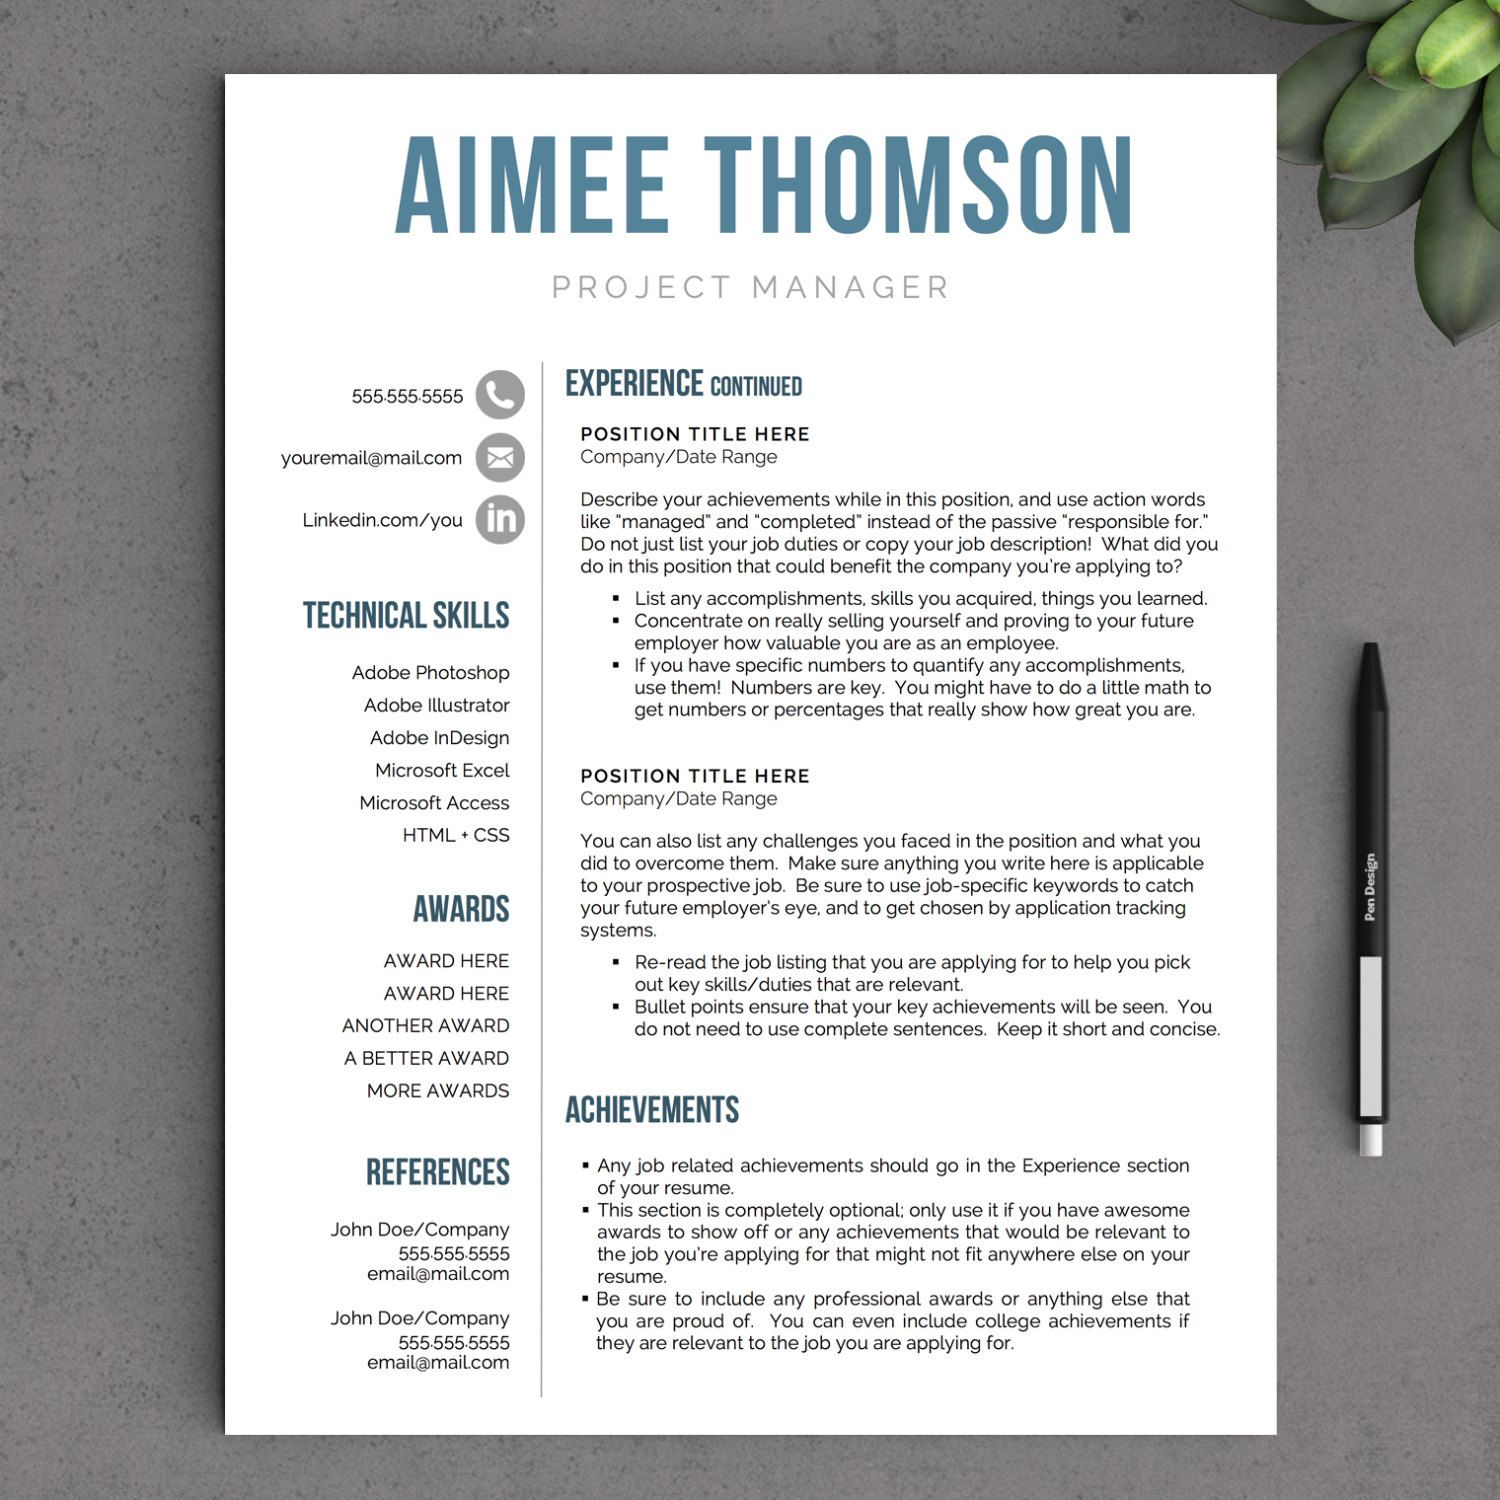 creative modern resume template for word us by format team leader operations primary school teacher cv sample pdf academic templates microsoft